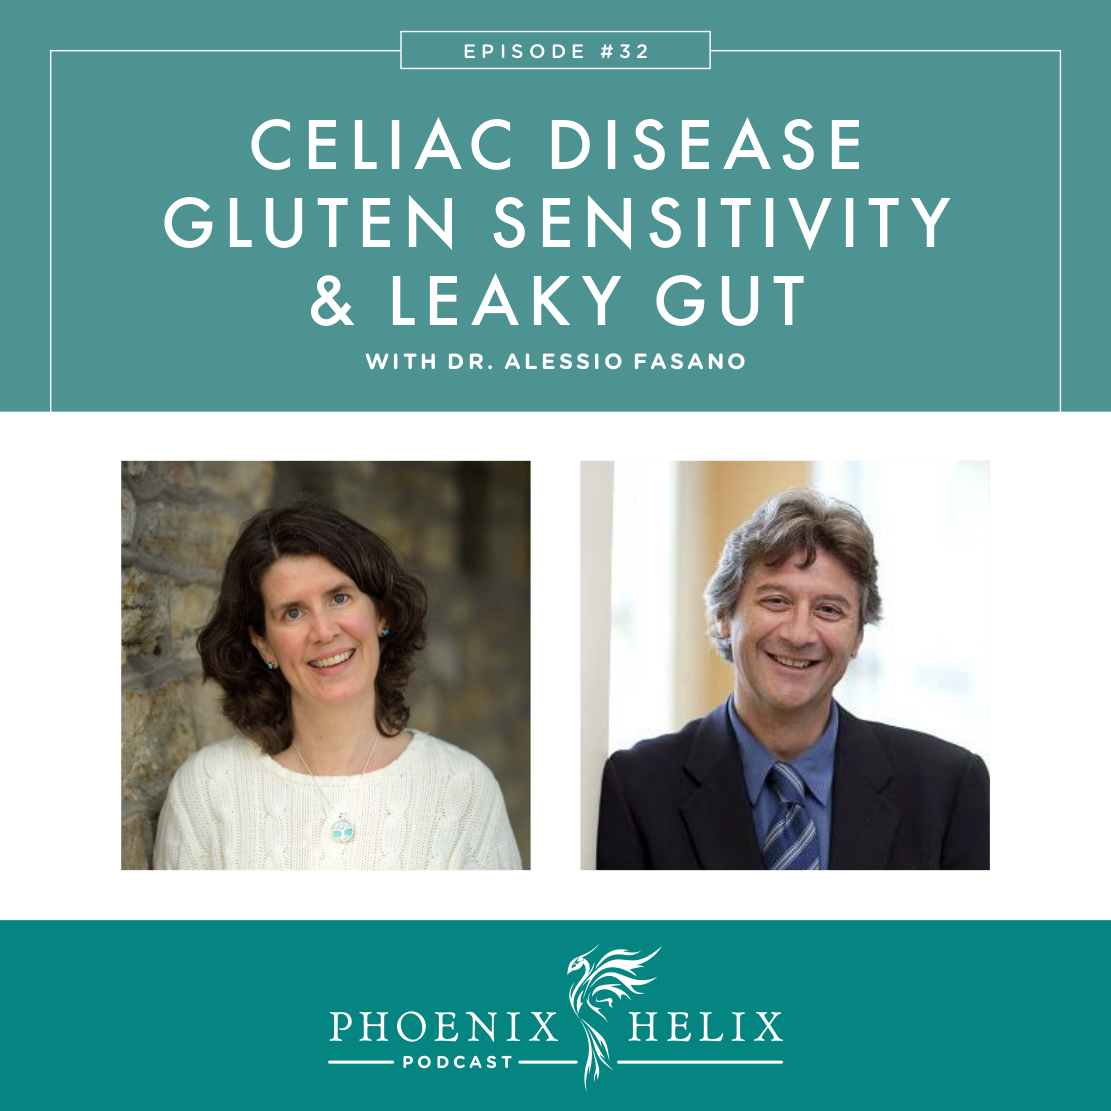 Celiac Disease, Gluten Sensitivity & Leaky Gut with Dr. Alessio Fasano | Phoenix Helix Podcast